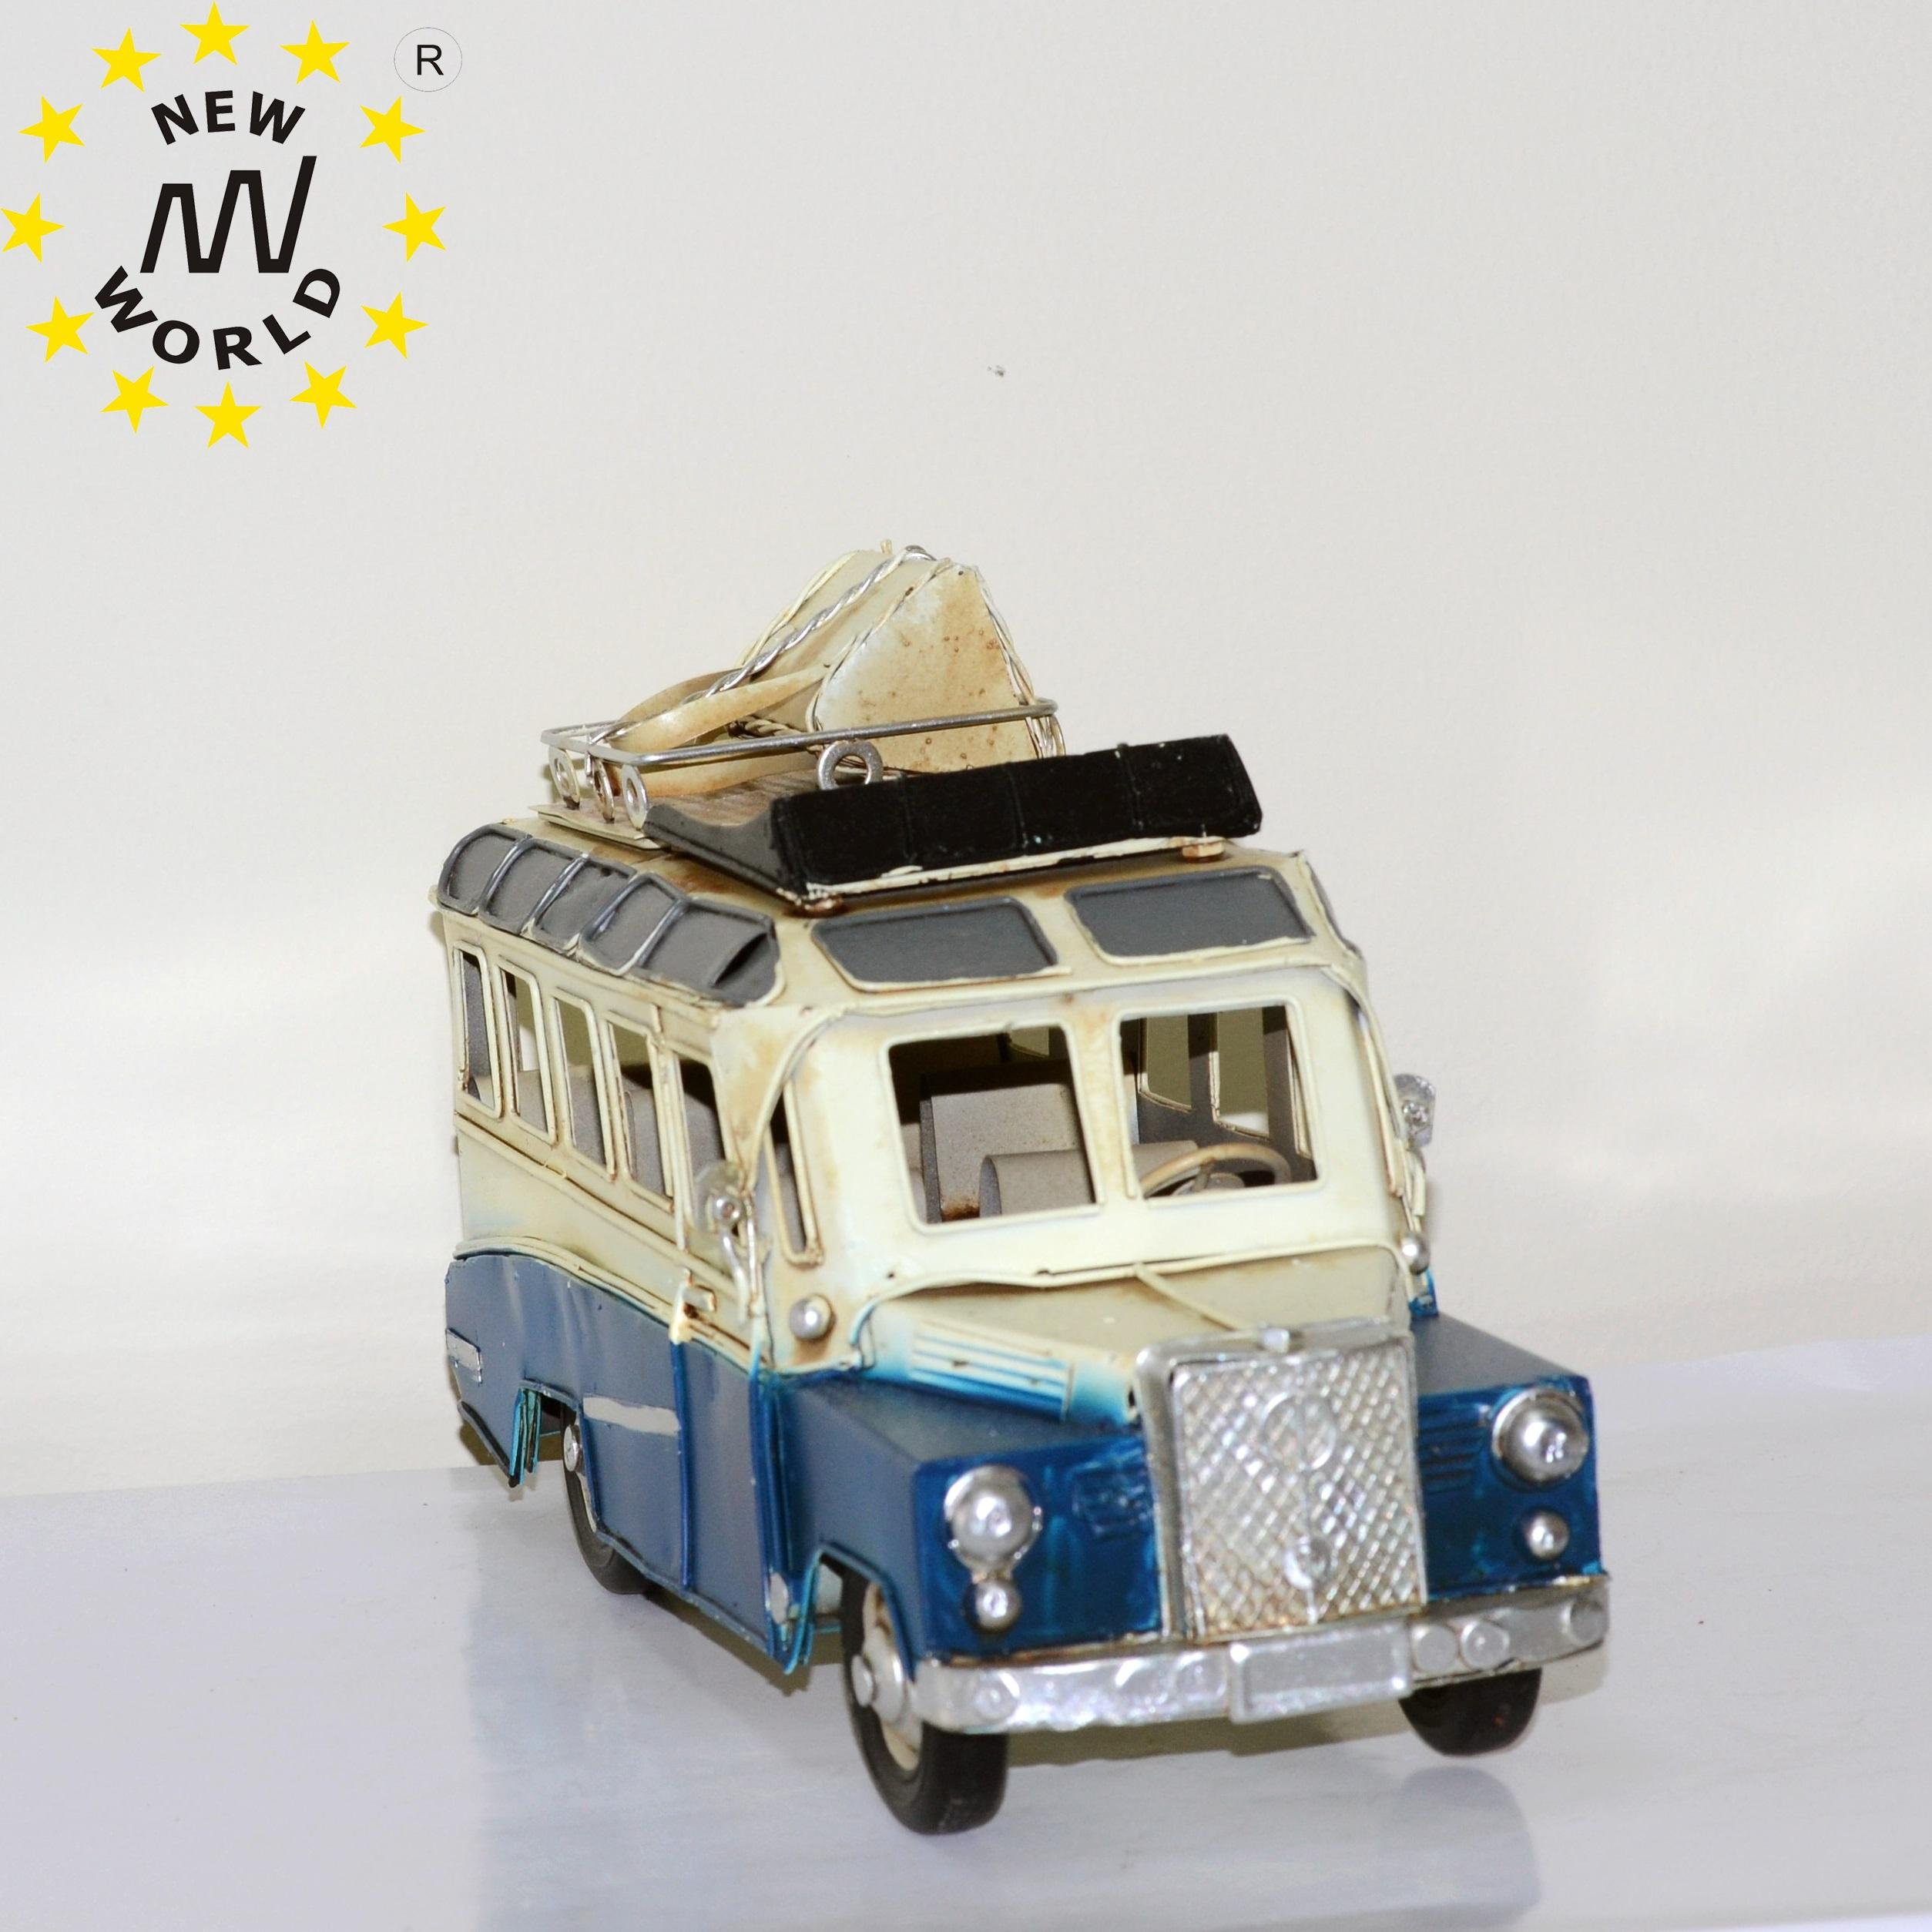 Metal Vintage Bus Model For Home Decoration Ornaments Handmade Handcrafted Collections Collectible Vehicle Gift